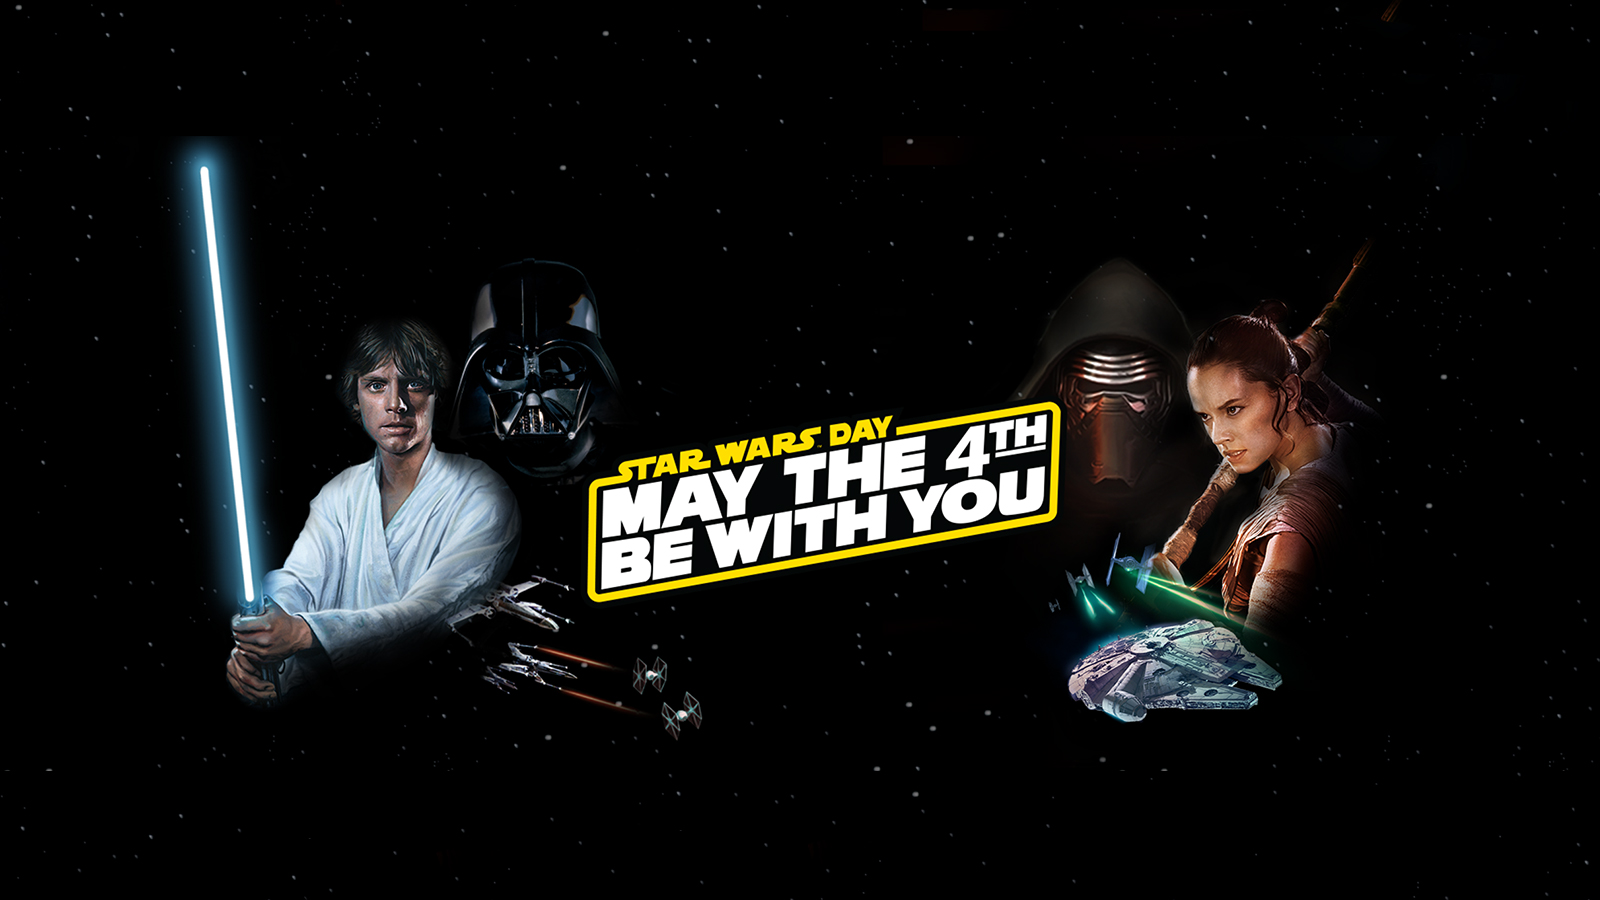 Fun Ways To Celebrate May the 4th For Star Wars Day